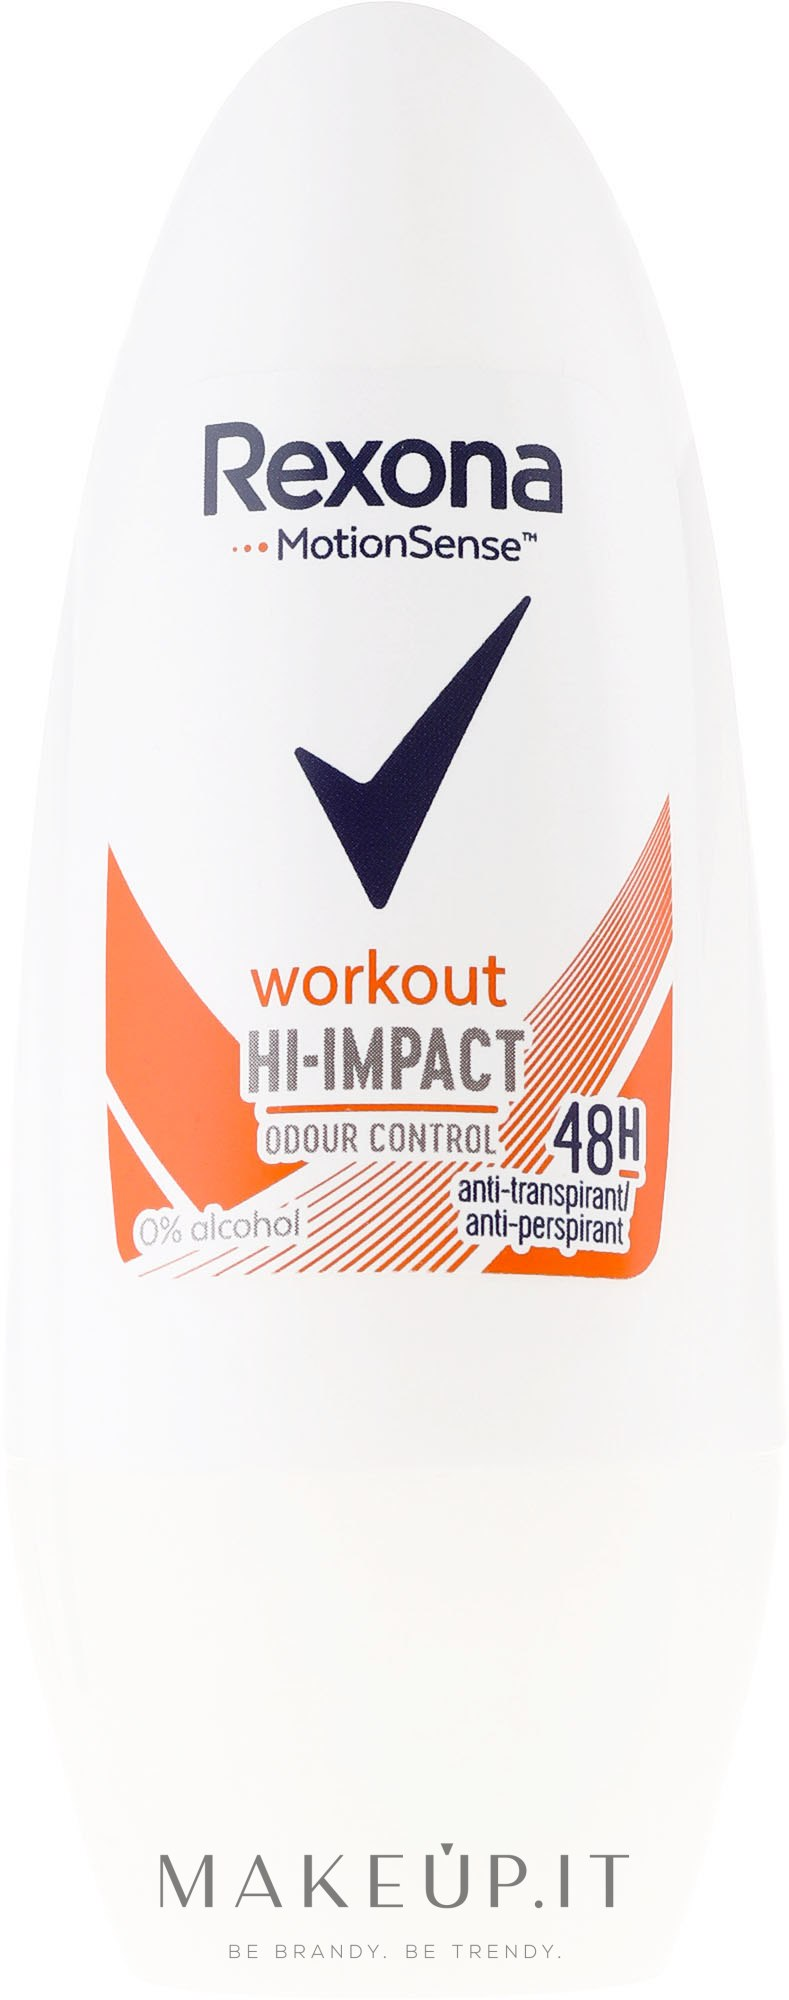 Deodorante roll-on - Rexona Motionsense Workout Hi-impact 48h Anti-perspirant — foto 50 ml